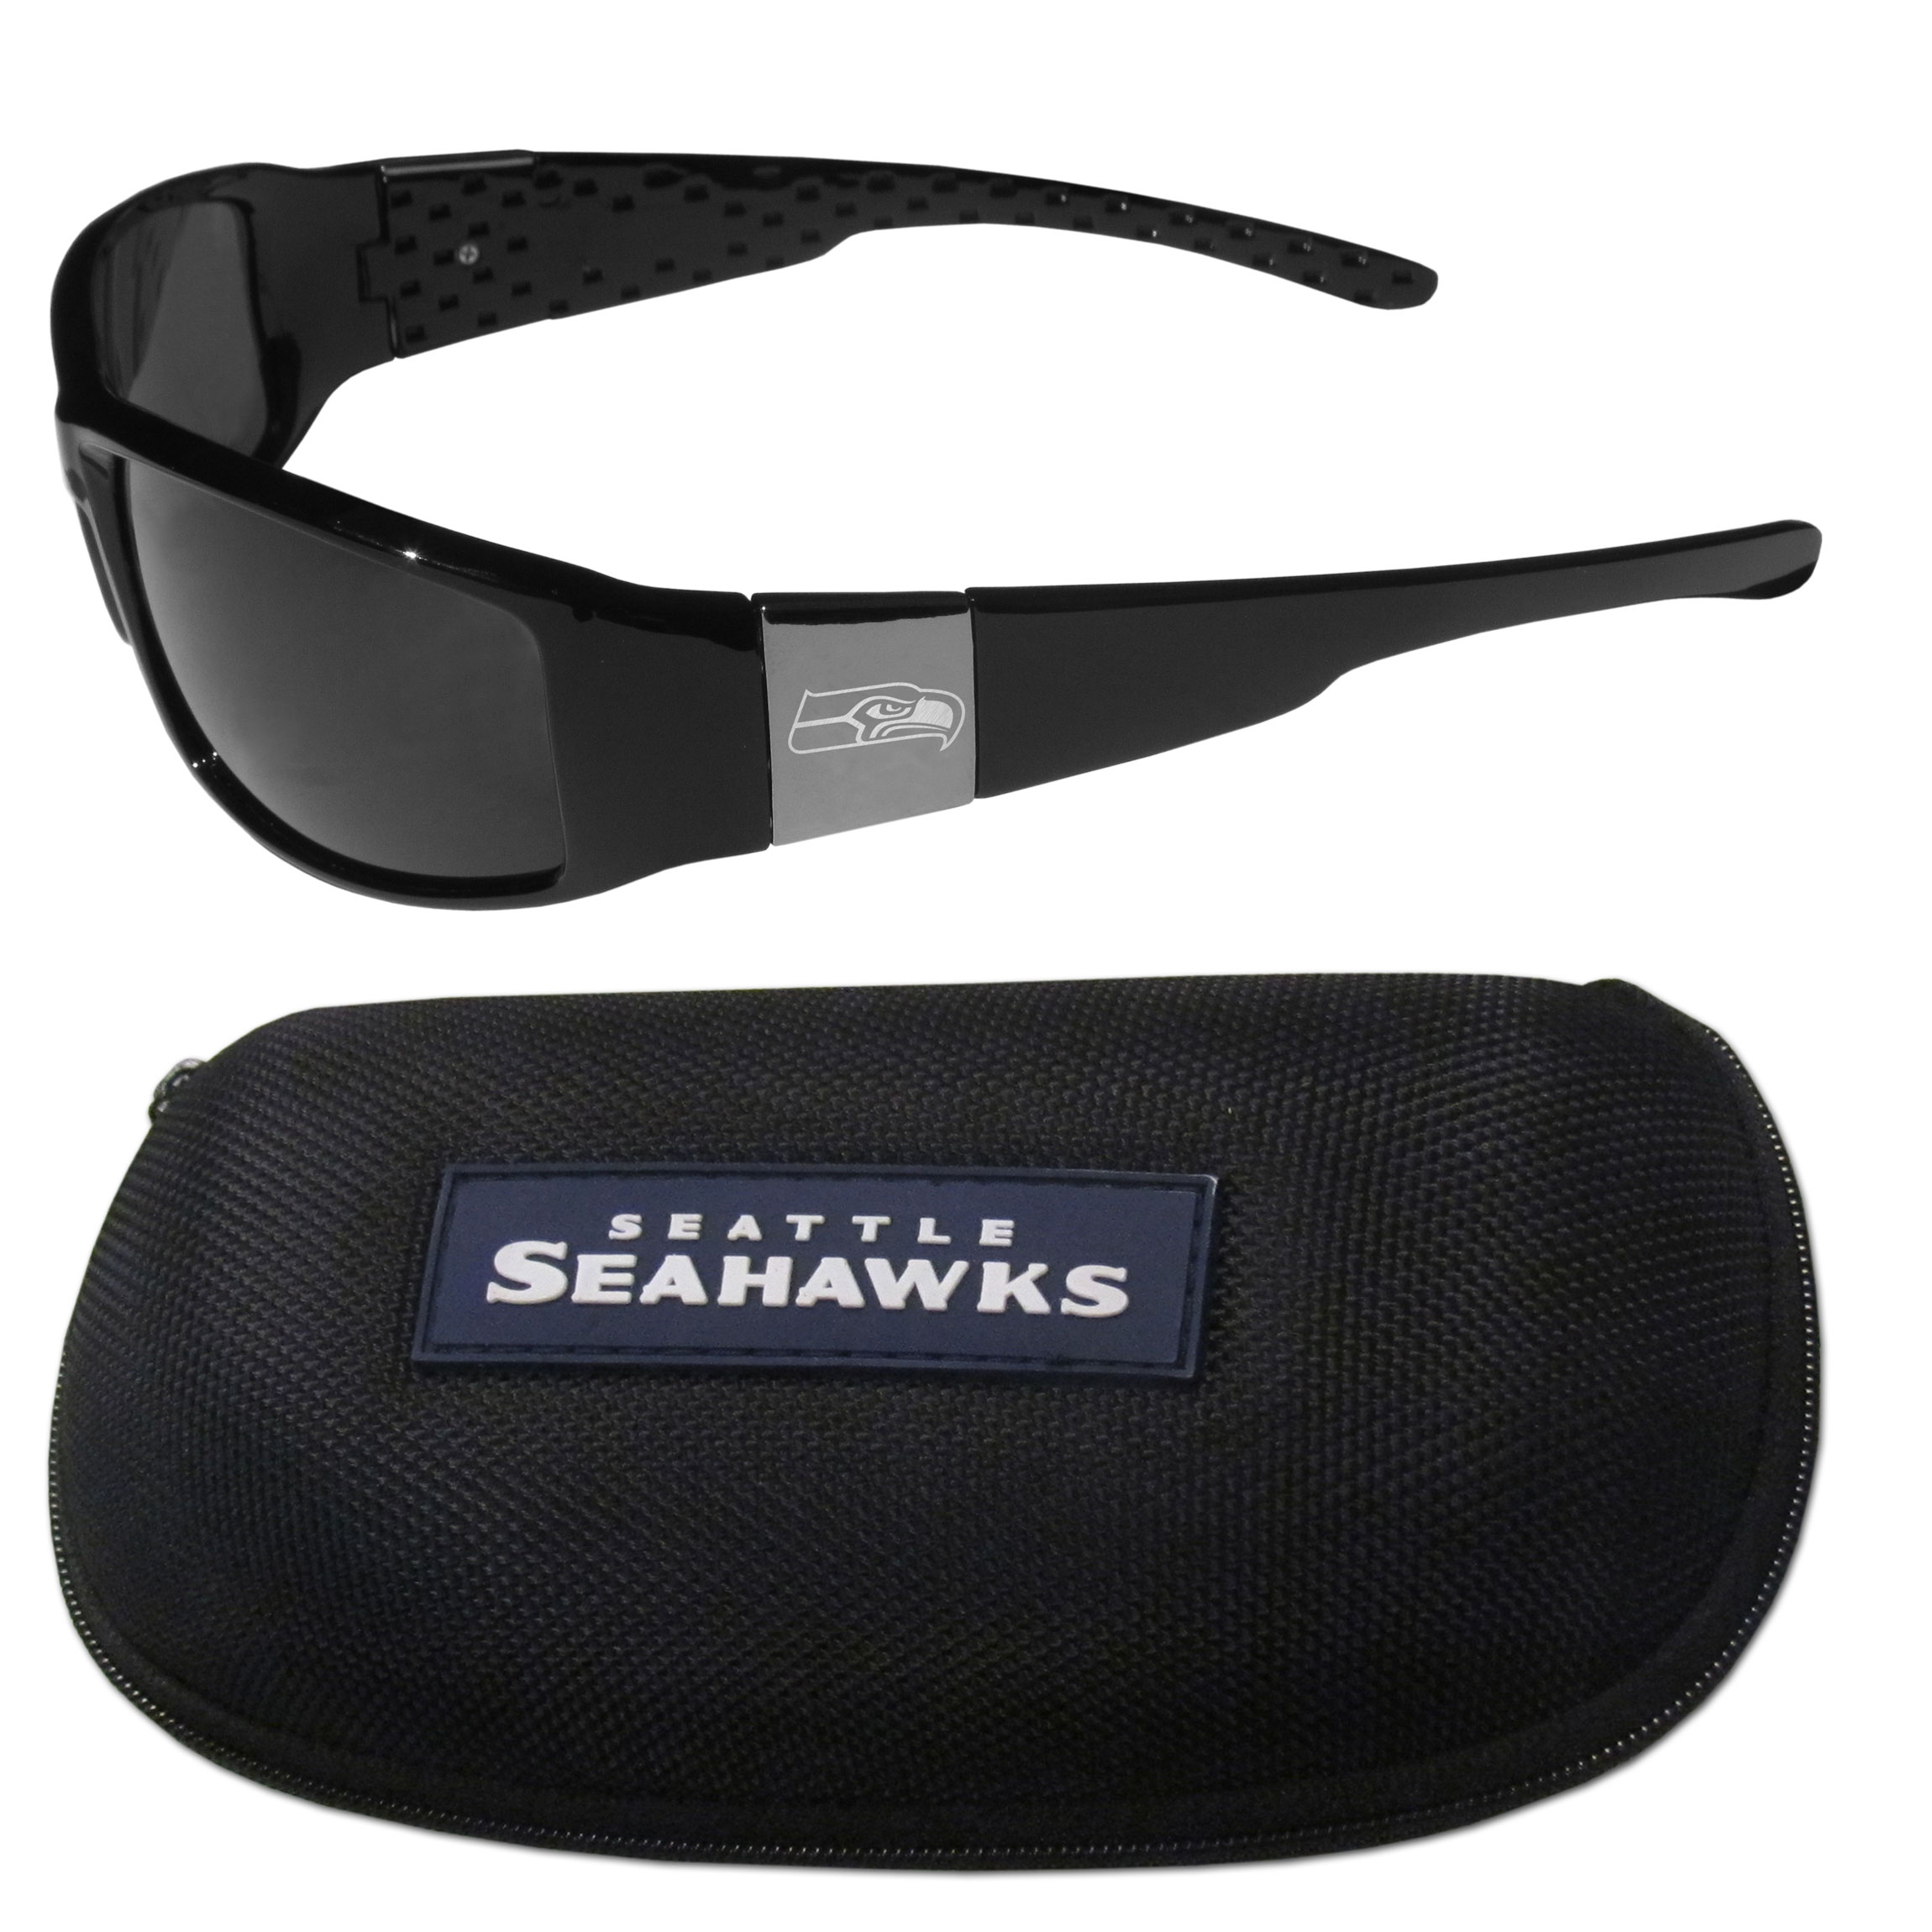 Seattle Seahawks Chrome Wrap Sunglasses and Zippered Carrying Case - This set includes our sleek and stylish Seattle Seahawks chrome wrap sunglasses and our hard shell, zippered carrying case. The sunglasses feature etched team logos on each arm and 100% UVA/UVB protection. The case features a large and colorful team emblem.